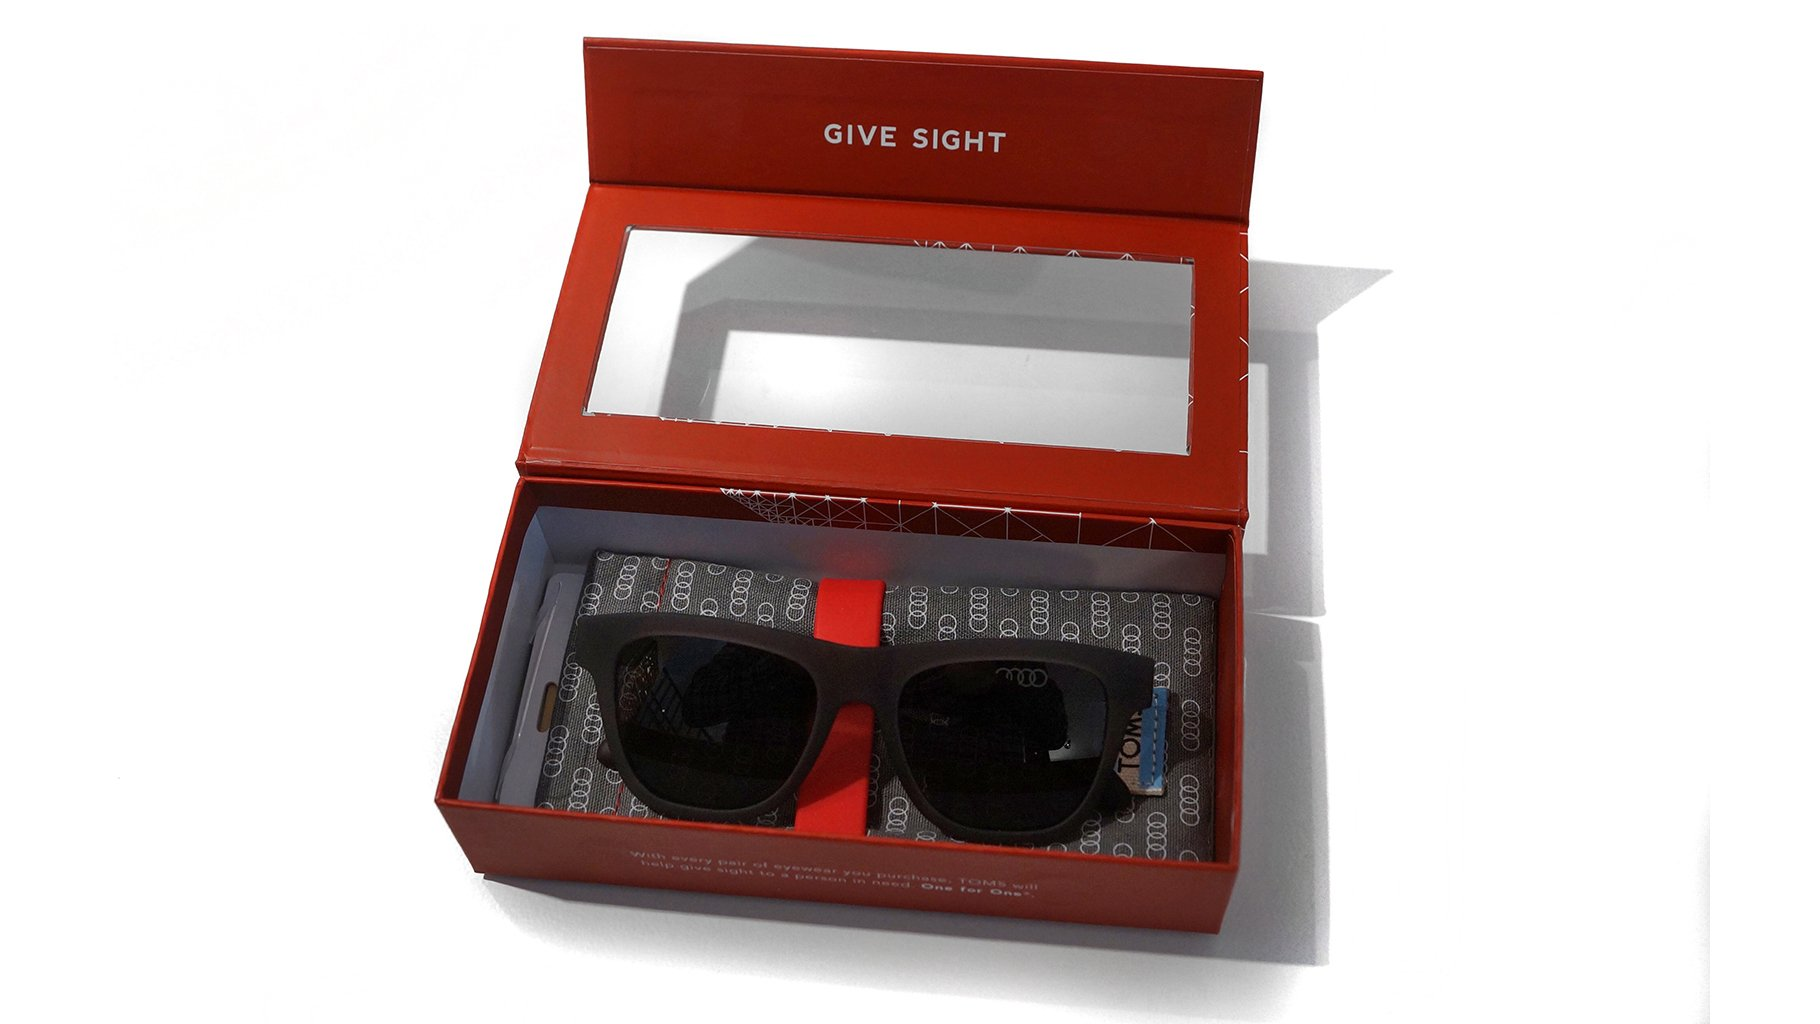 Dch Audi Oxnard Dch Audi Oxnard Give The Gift Of Sight When You Buy Or Lease